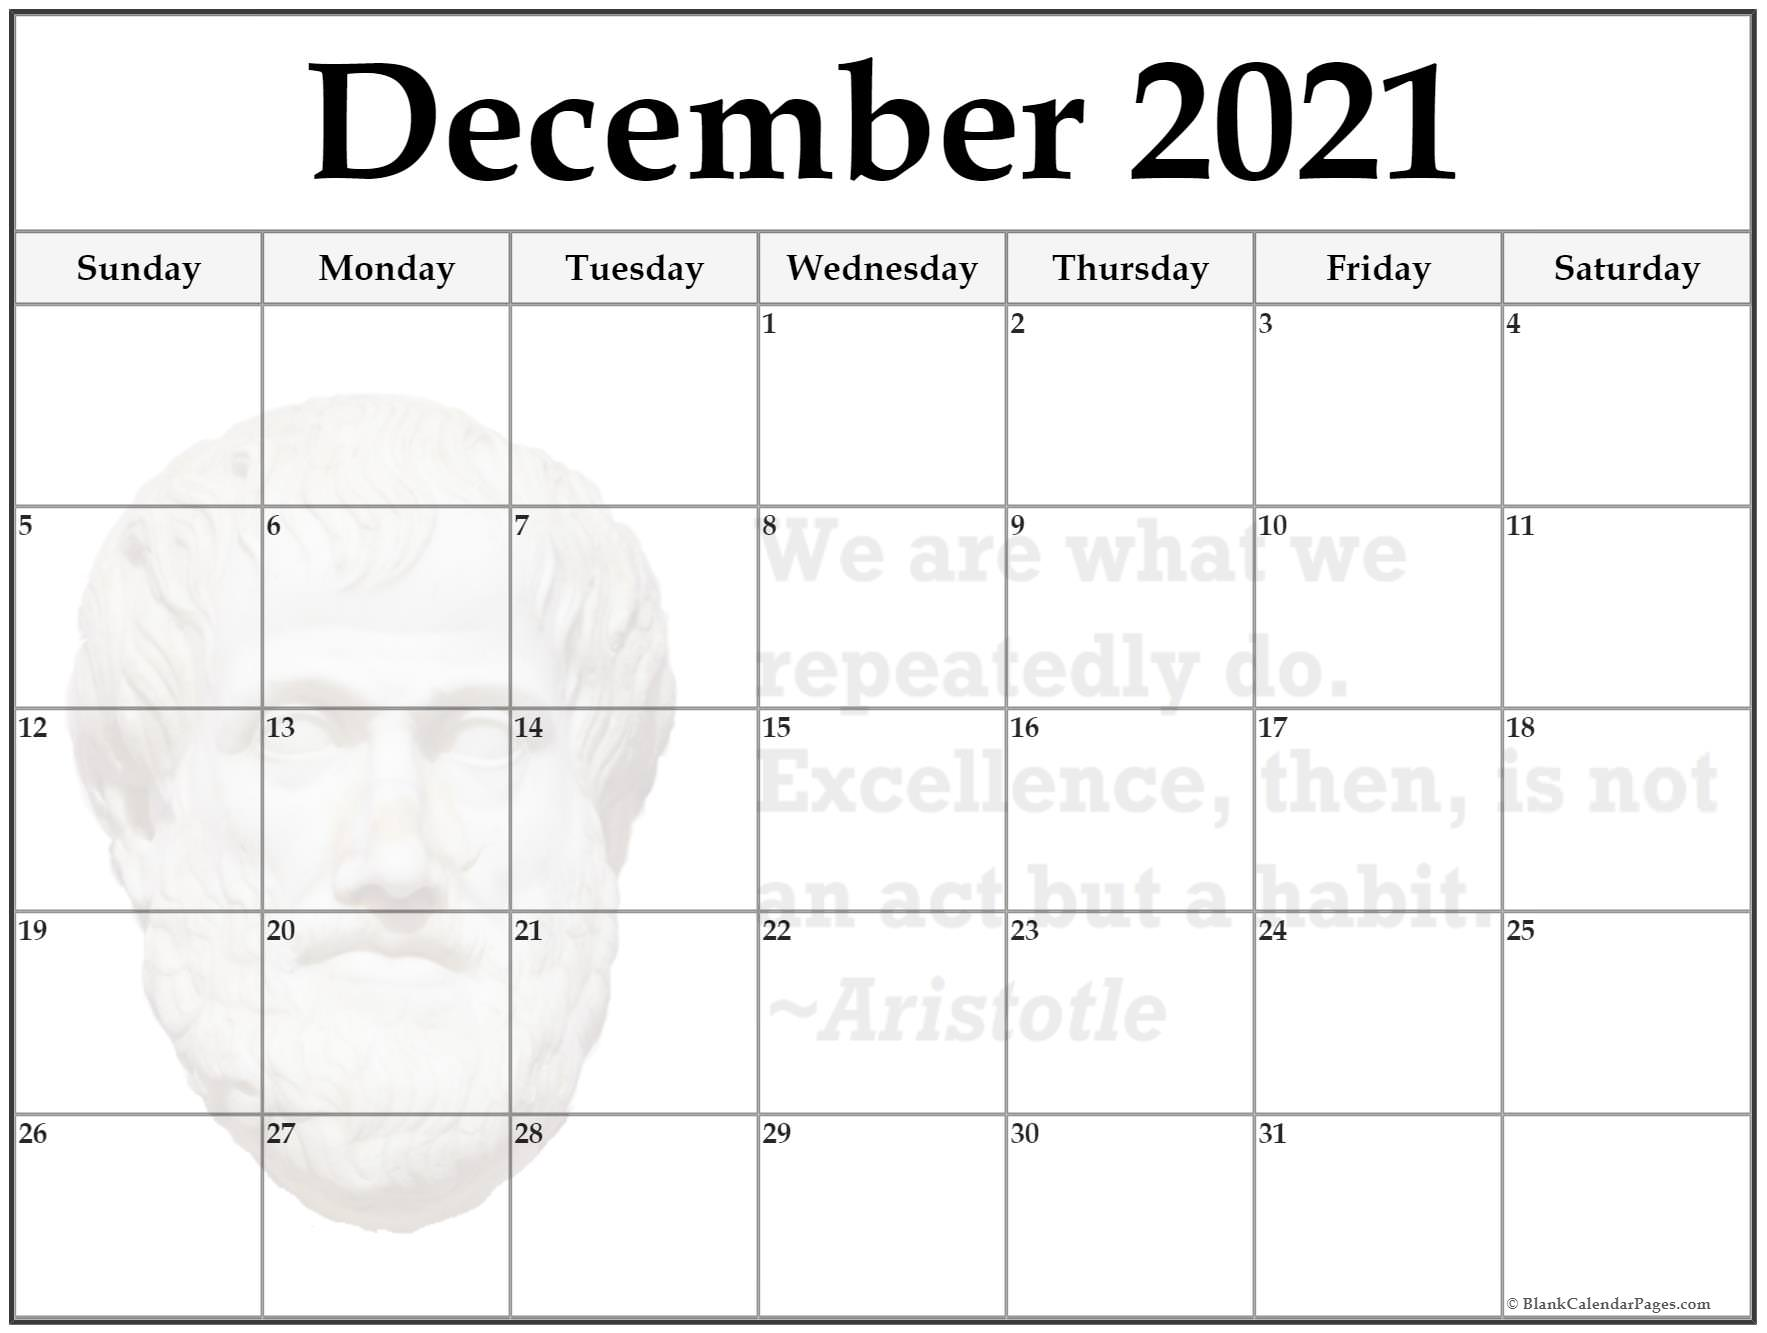 December calendar We are what we repeatedly do. excellence then is not an act but a habit ~Aristotle